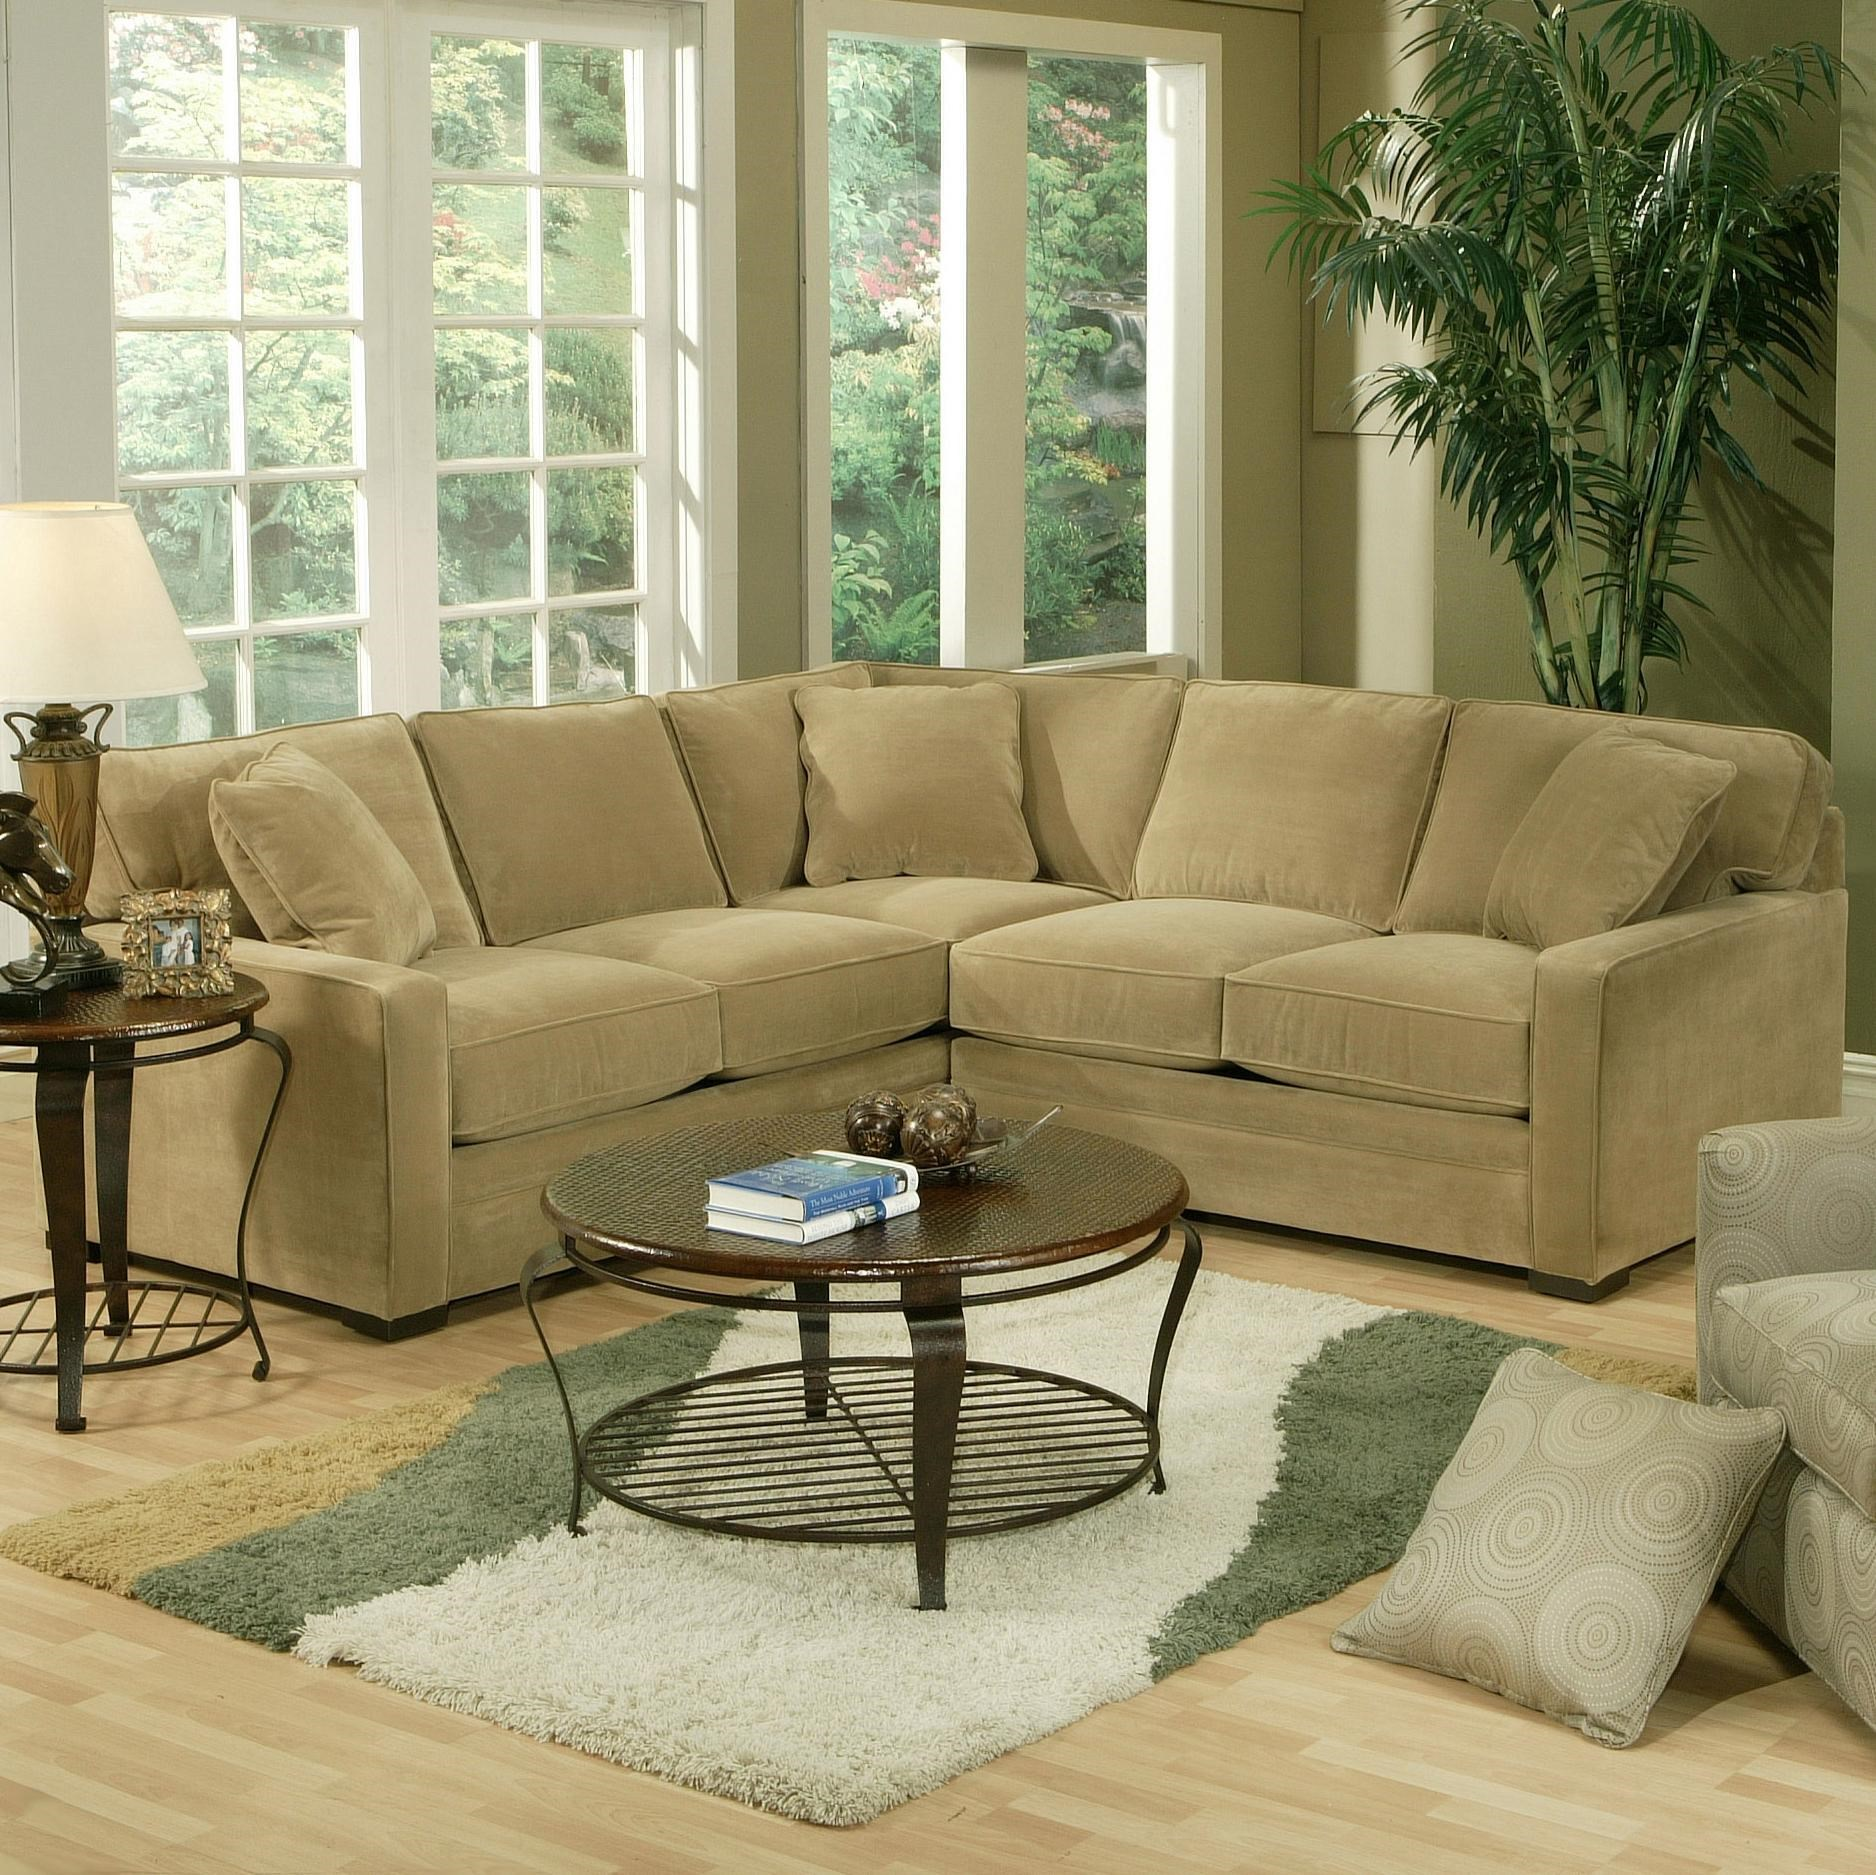 Beau Jonathan Louis Choices   JunoSectional Sofa ...